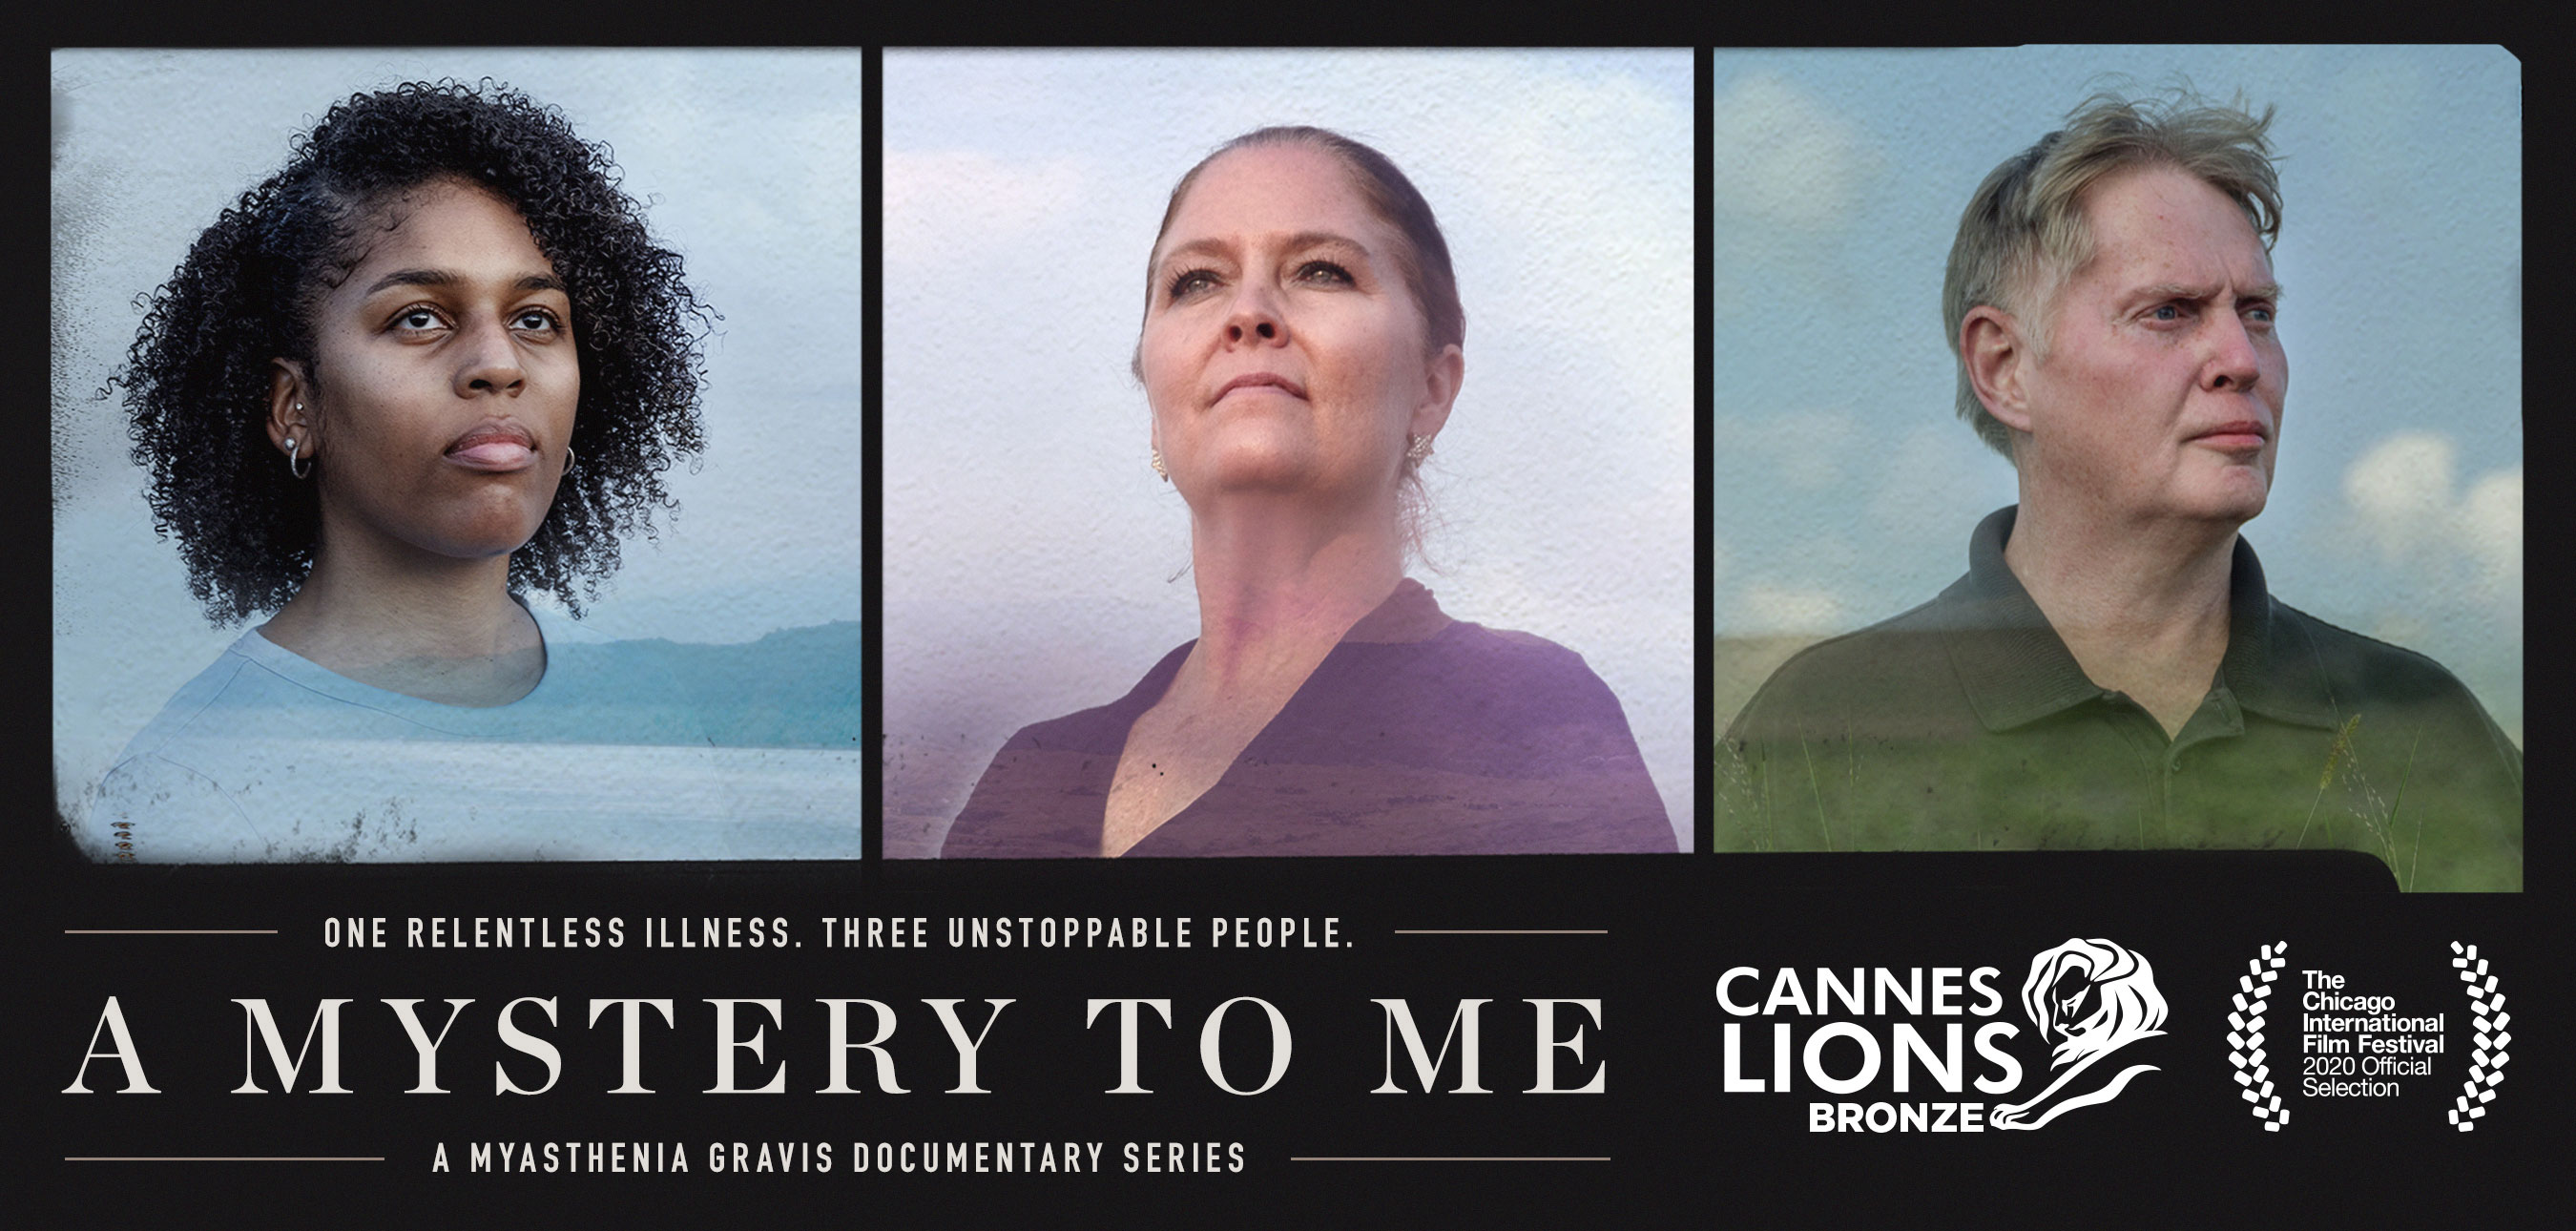 """""""A Mystery to Me"""" is the first documentary film series that reveal the hidden toll myasthenia gravies takes on three people who must live with it every day."""